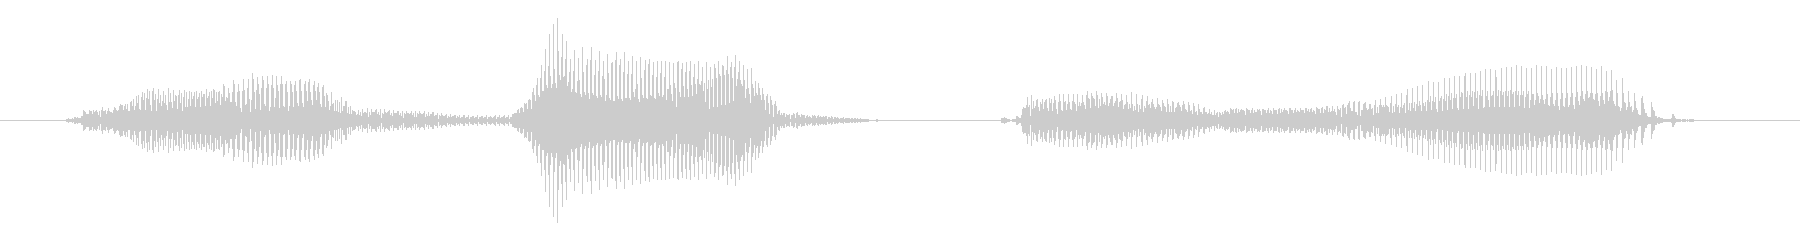 Do your best. The voice of a 5-year-old boy.'s unreproduced waveform